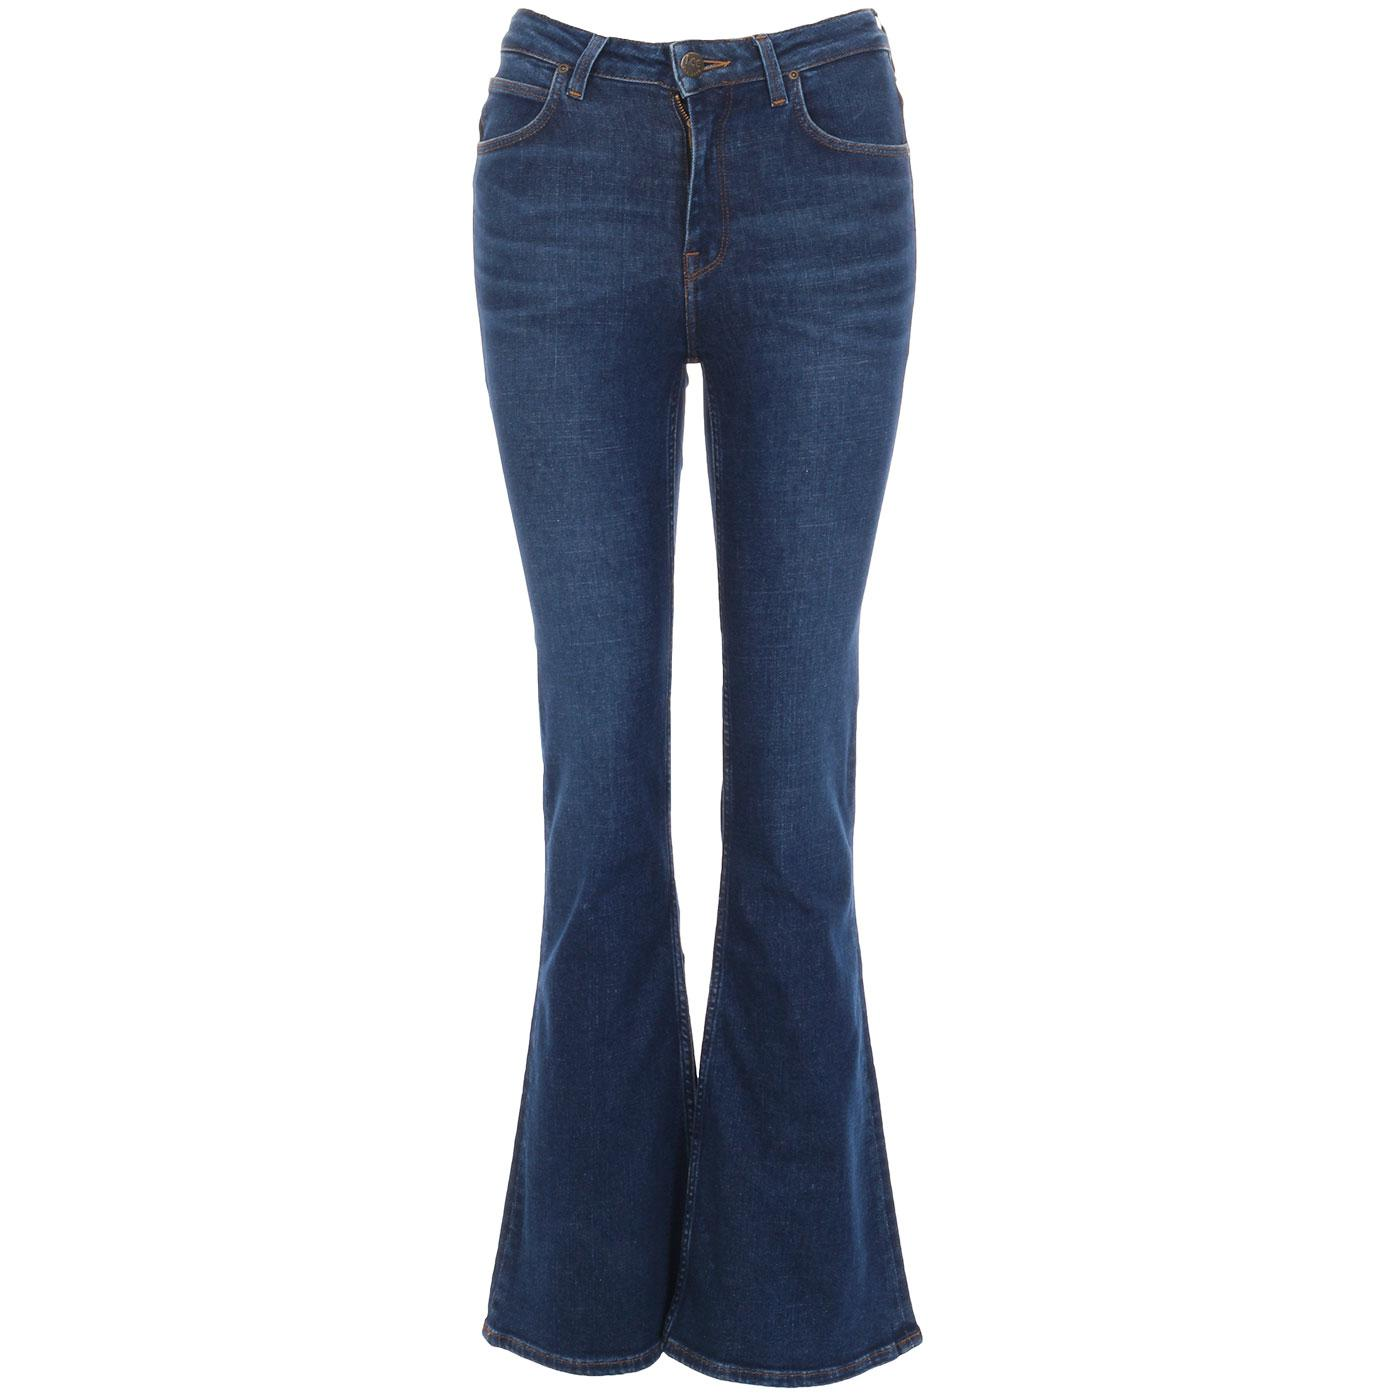 Breese LEE JEANS Retro High Rise Flare Jeans DF